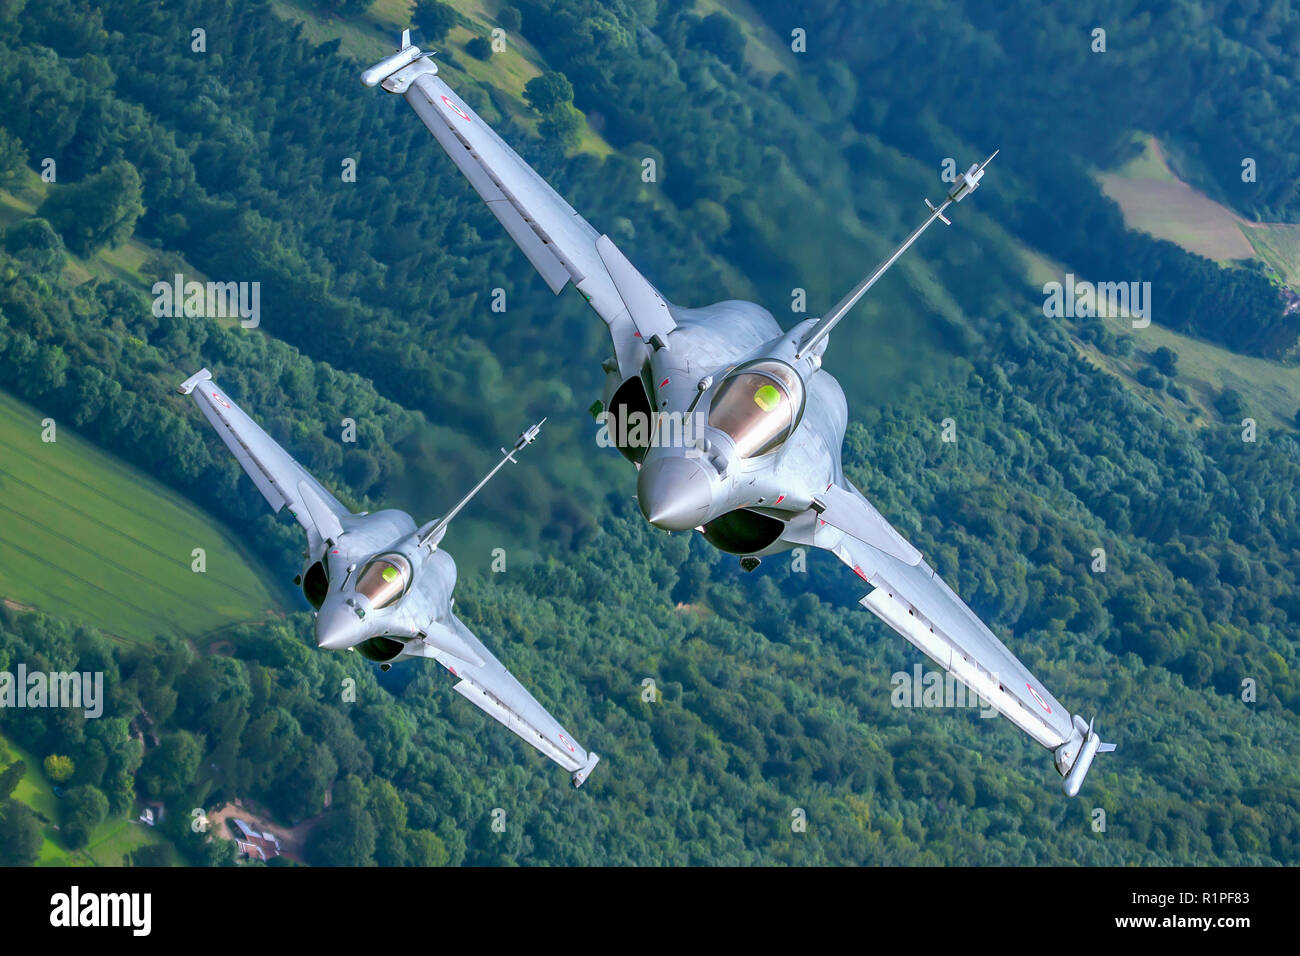 Dassault Rafale is a French twin-engine, canard delta wing, multirole fighter aircraft designed and built by Dassault Aviation. Equipped with a wide r - Stock Image